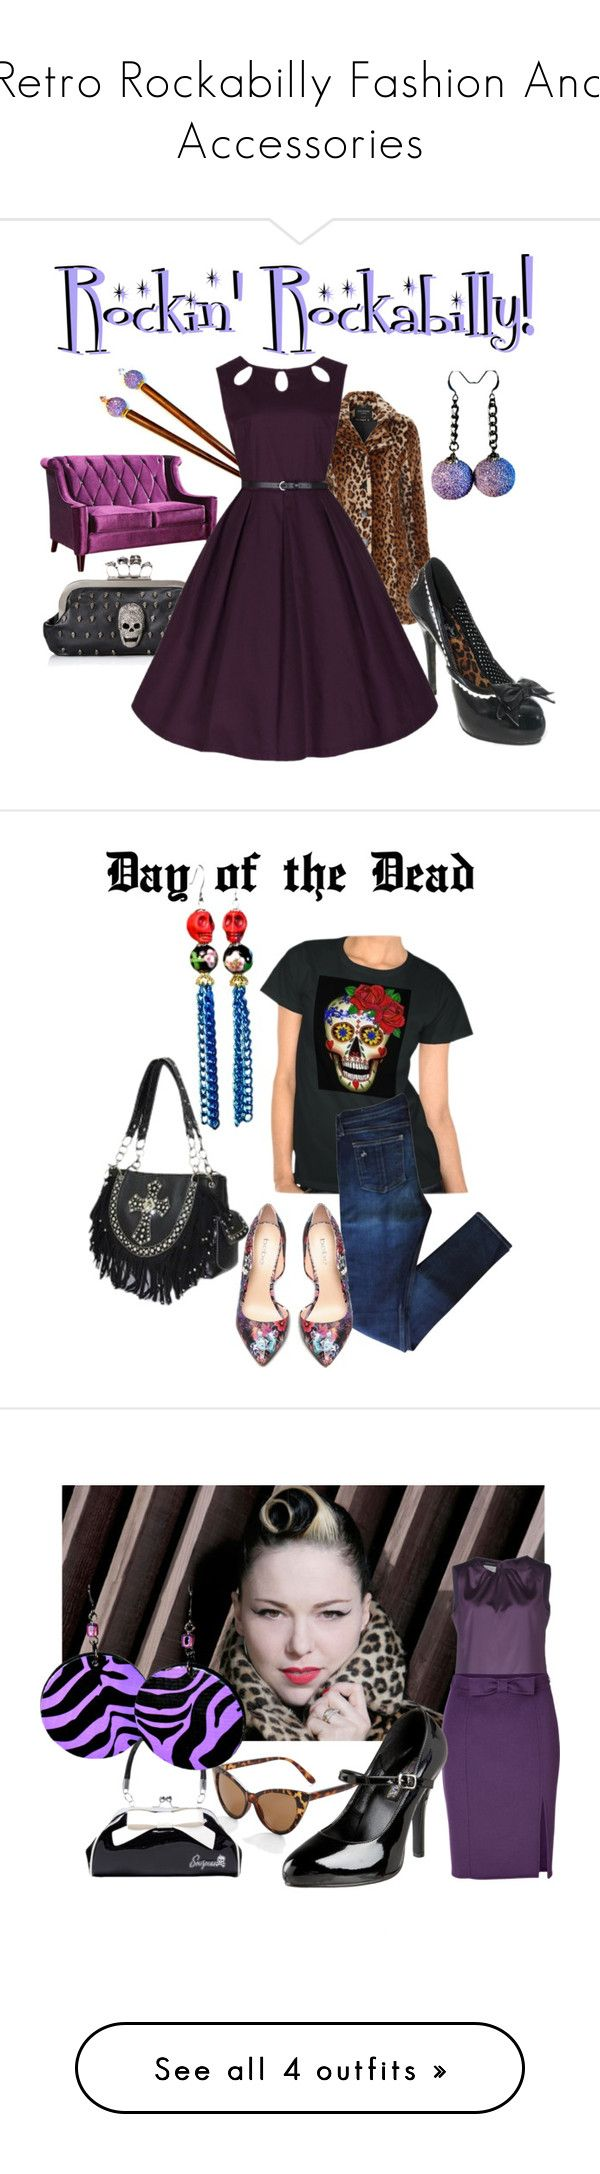 """""""Retro Rockabilly Fashion And Accessories"""" by blukatdesign ❤ liked on Polyvore featuring Armen Living, Jane Norman, Bettie Page, retro, rockabilly, rag & bone, Bebe, Dayofthedead, sugarskull and Emporio Armani"""